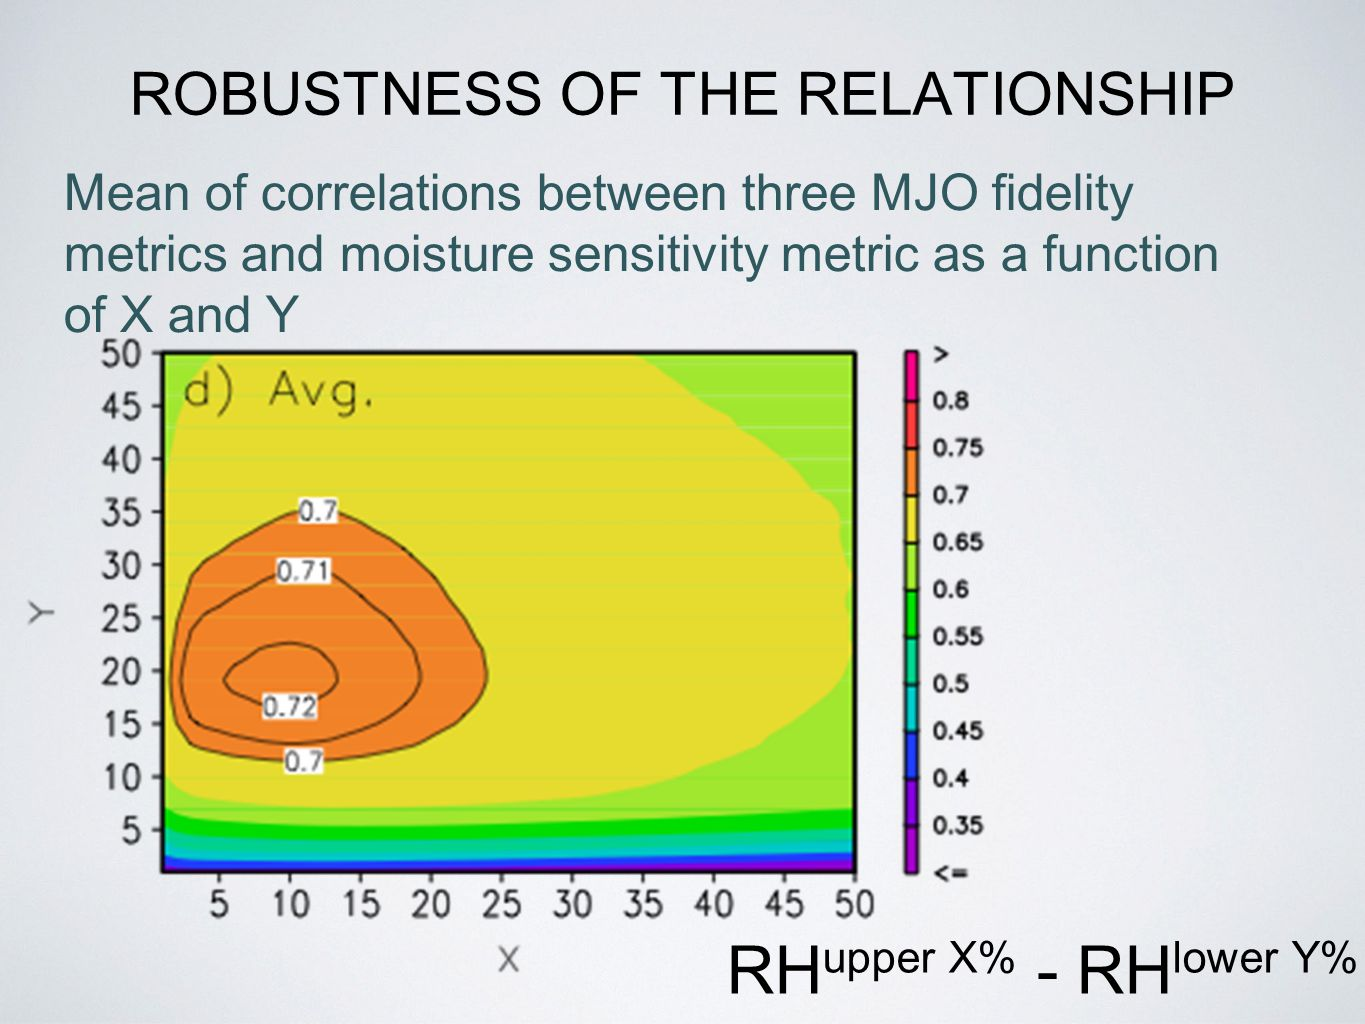 ROBUSTNESS OF THE RELATIONSHIP RH upper X% - RH lower Y% Mean of correlations between three MJO fidelity metrics and moisture sensitivity metric as a function of X and Y